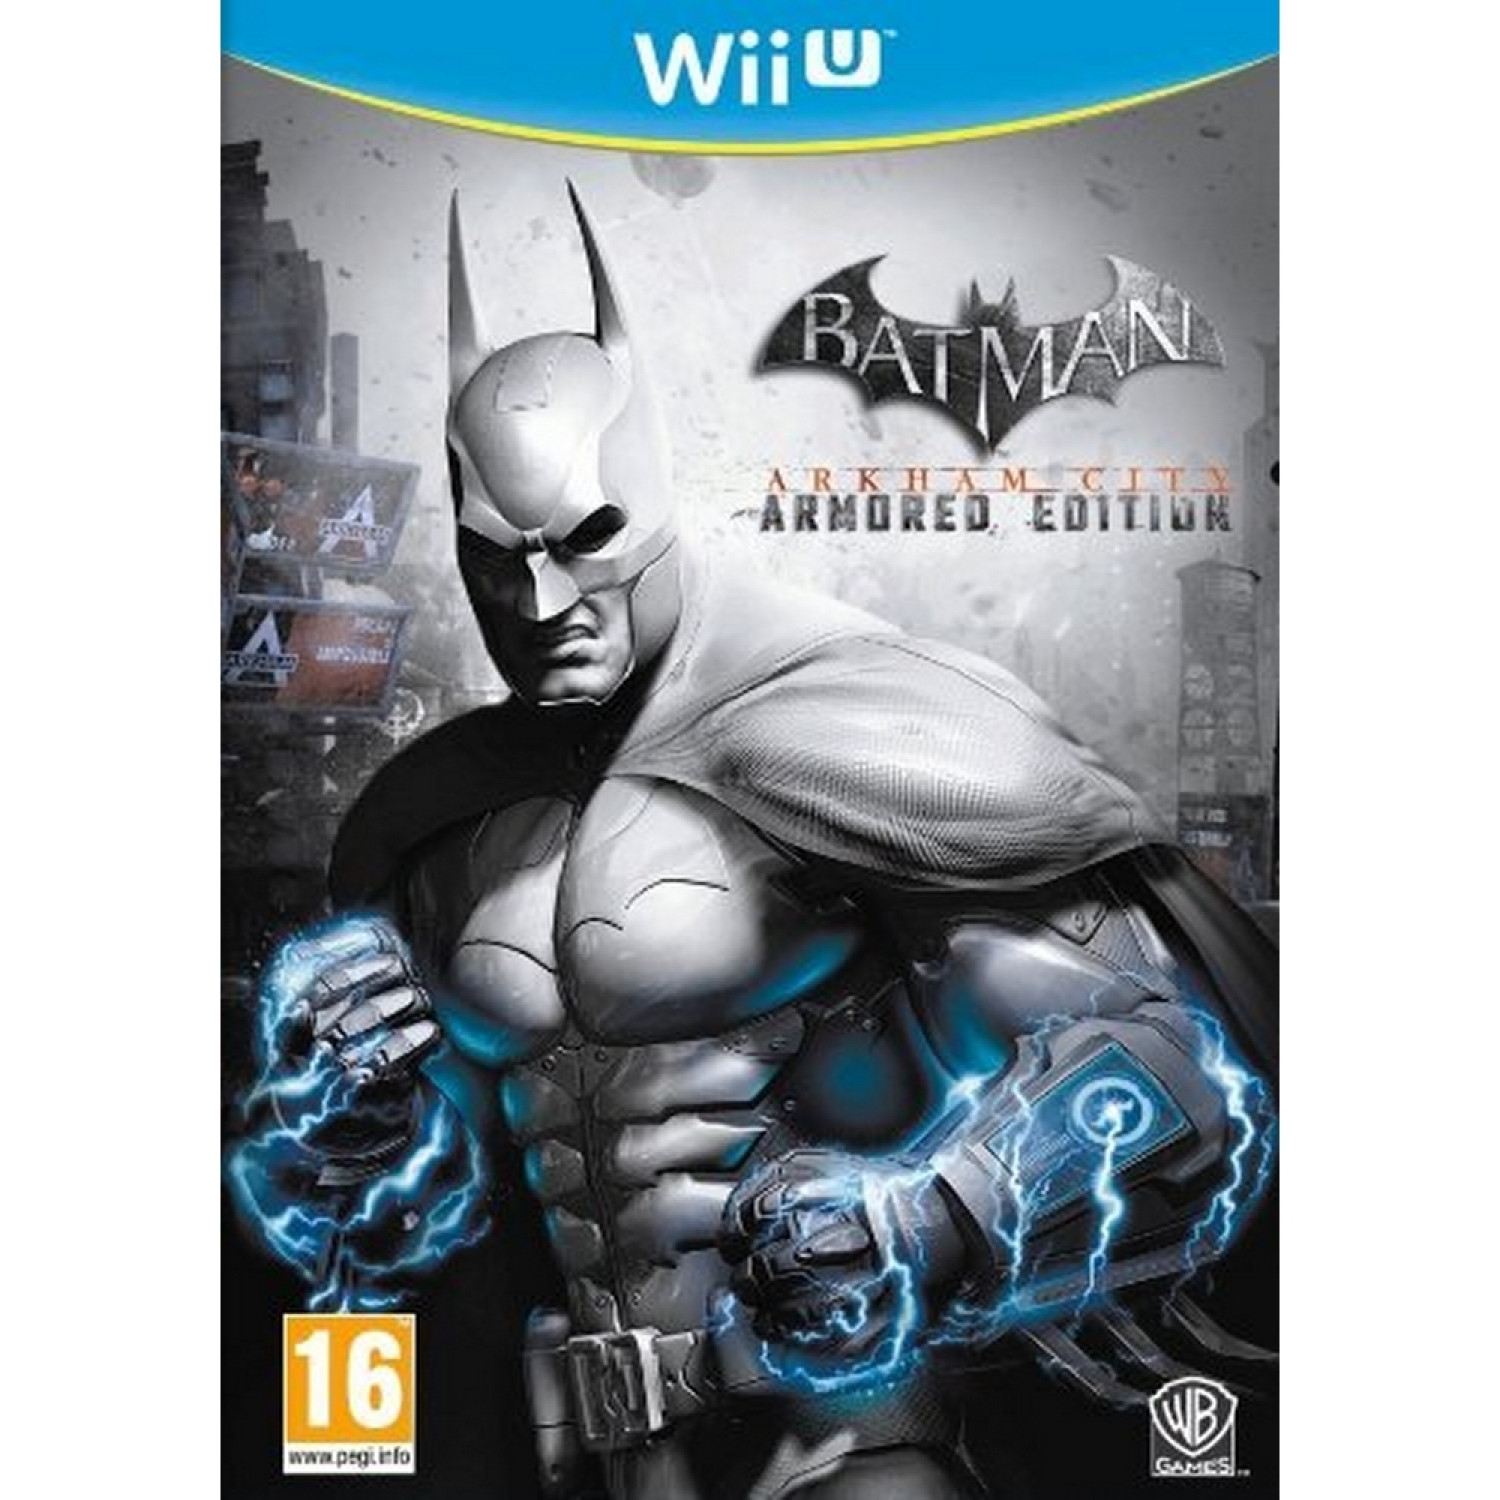 Batman Arkham City - Edition Armored